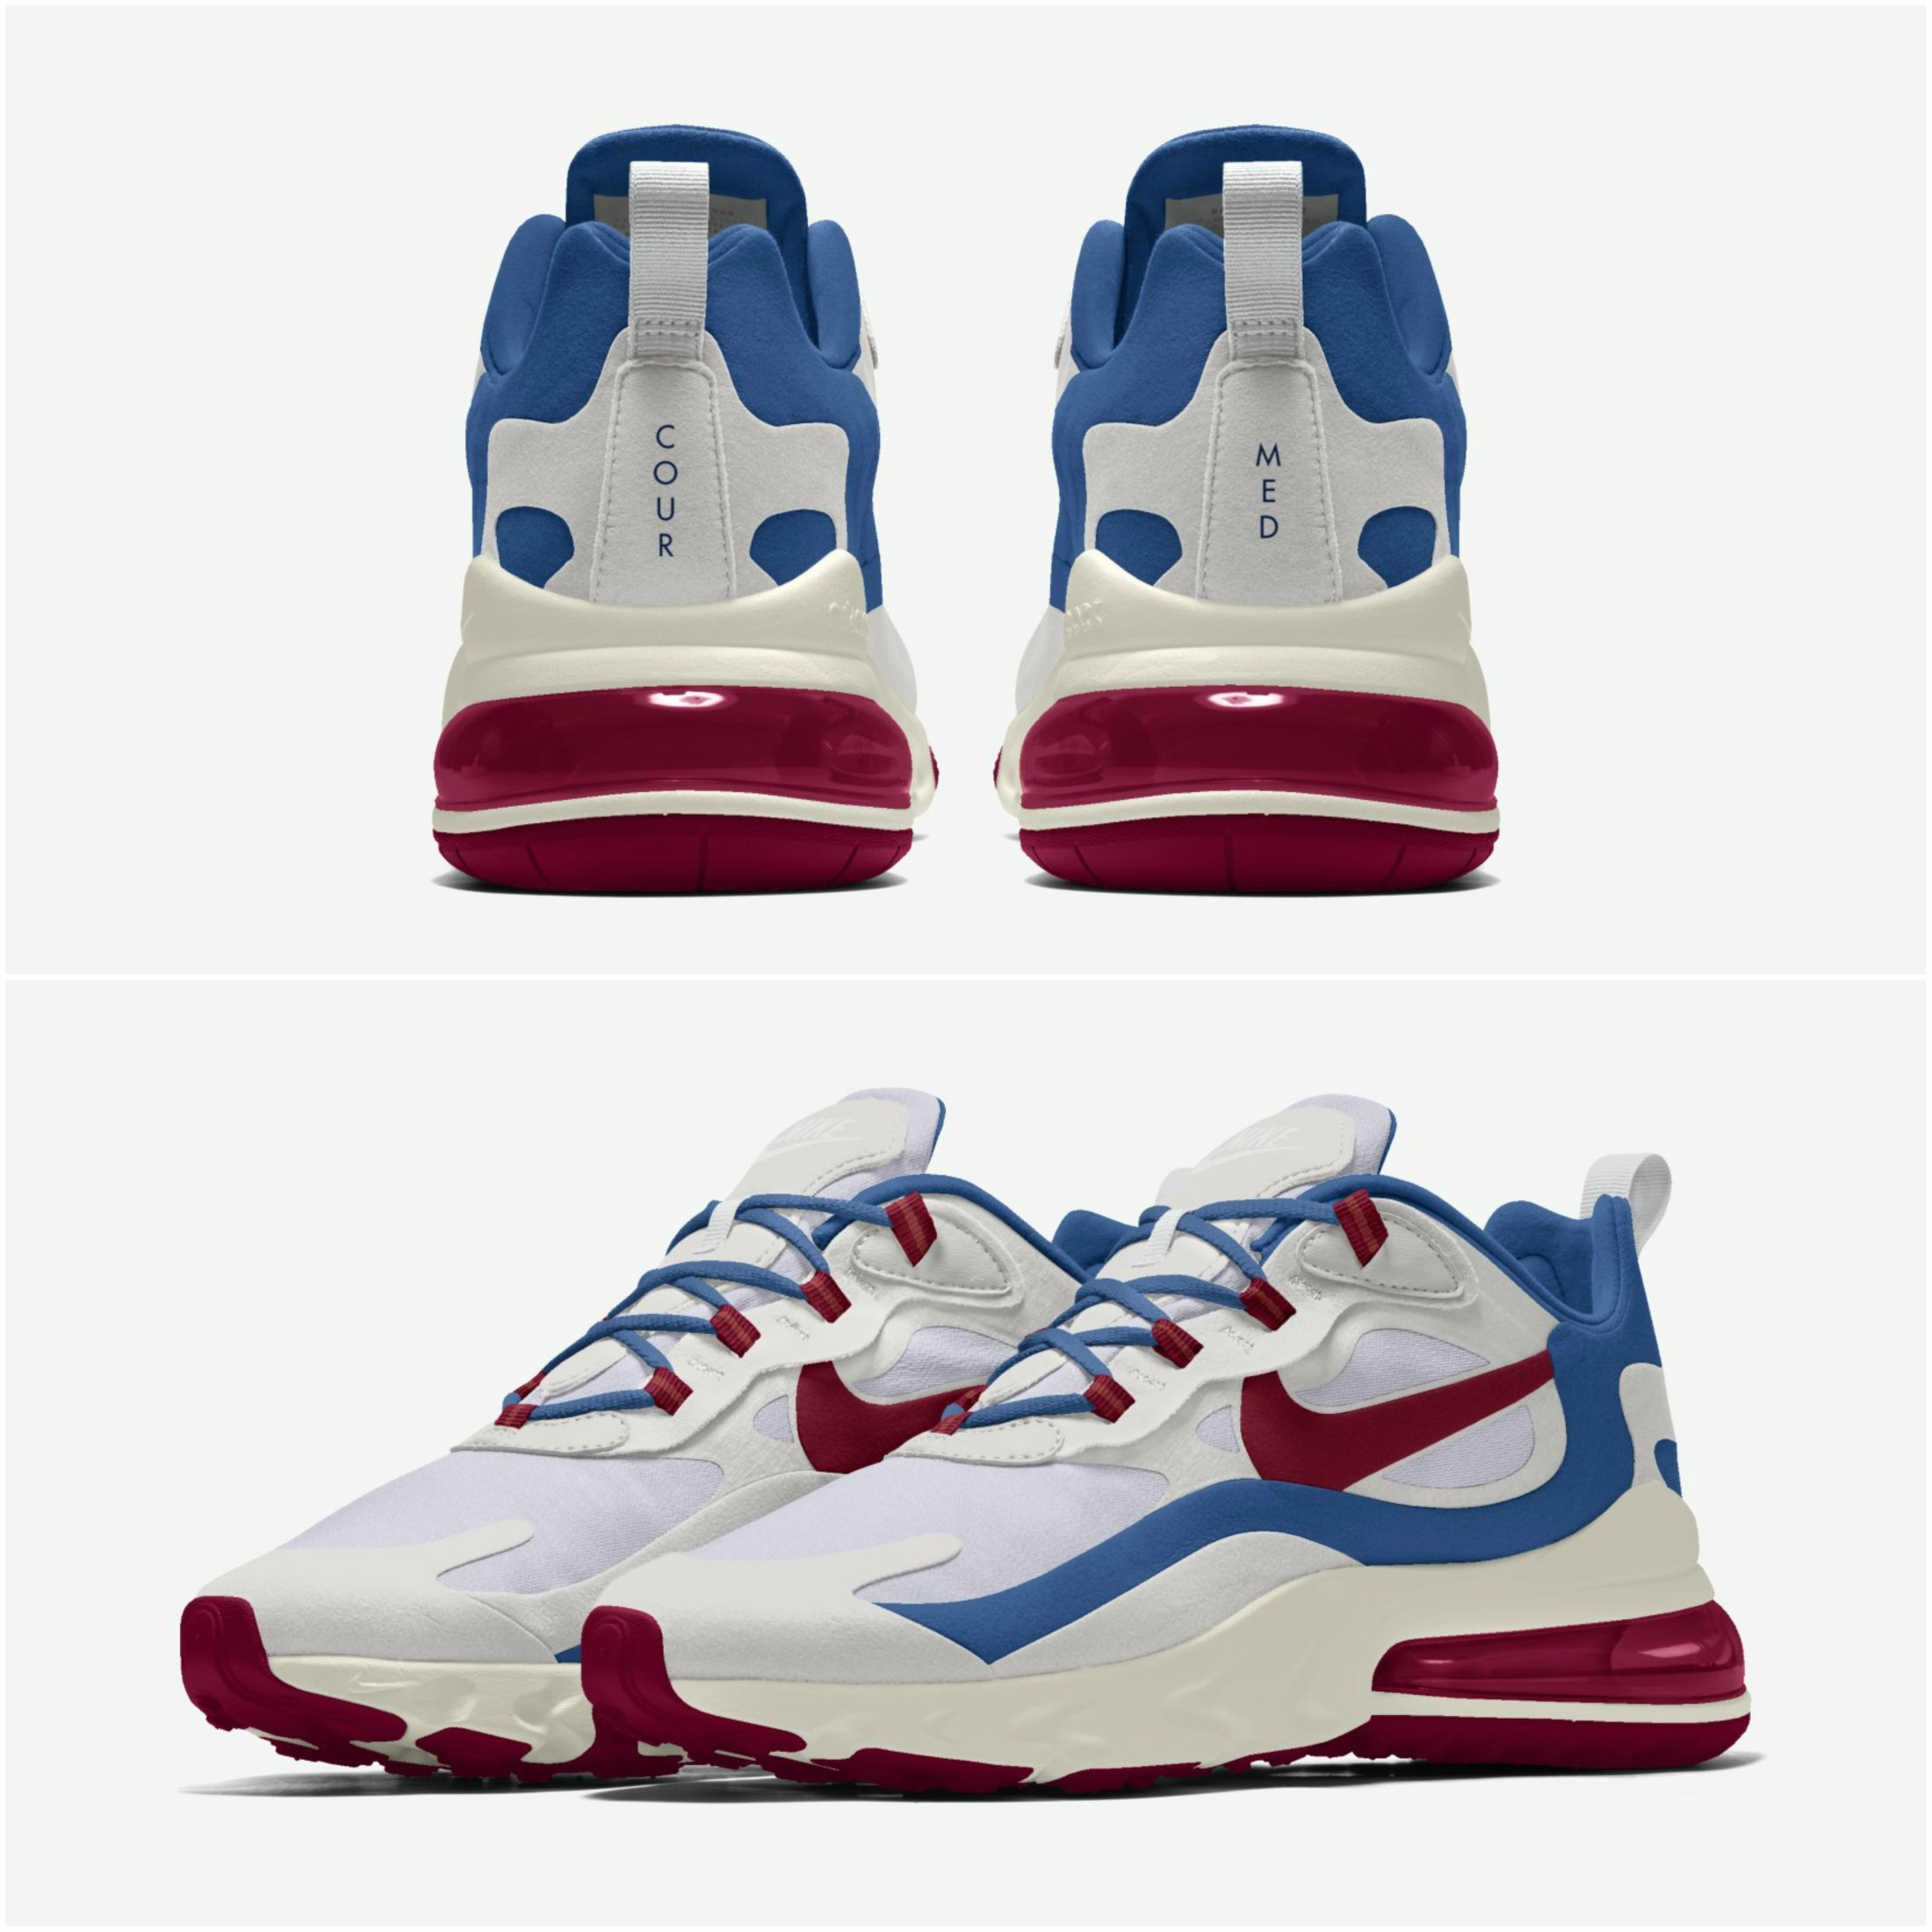 CourMed Nike Air Max